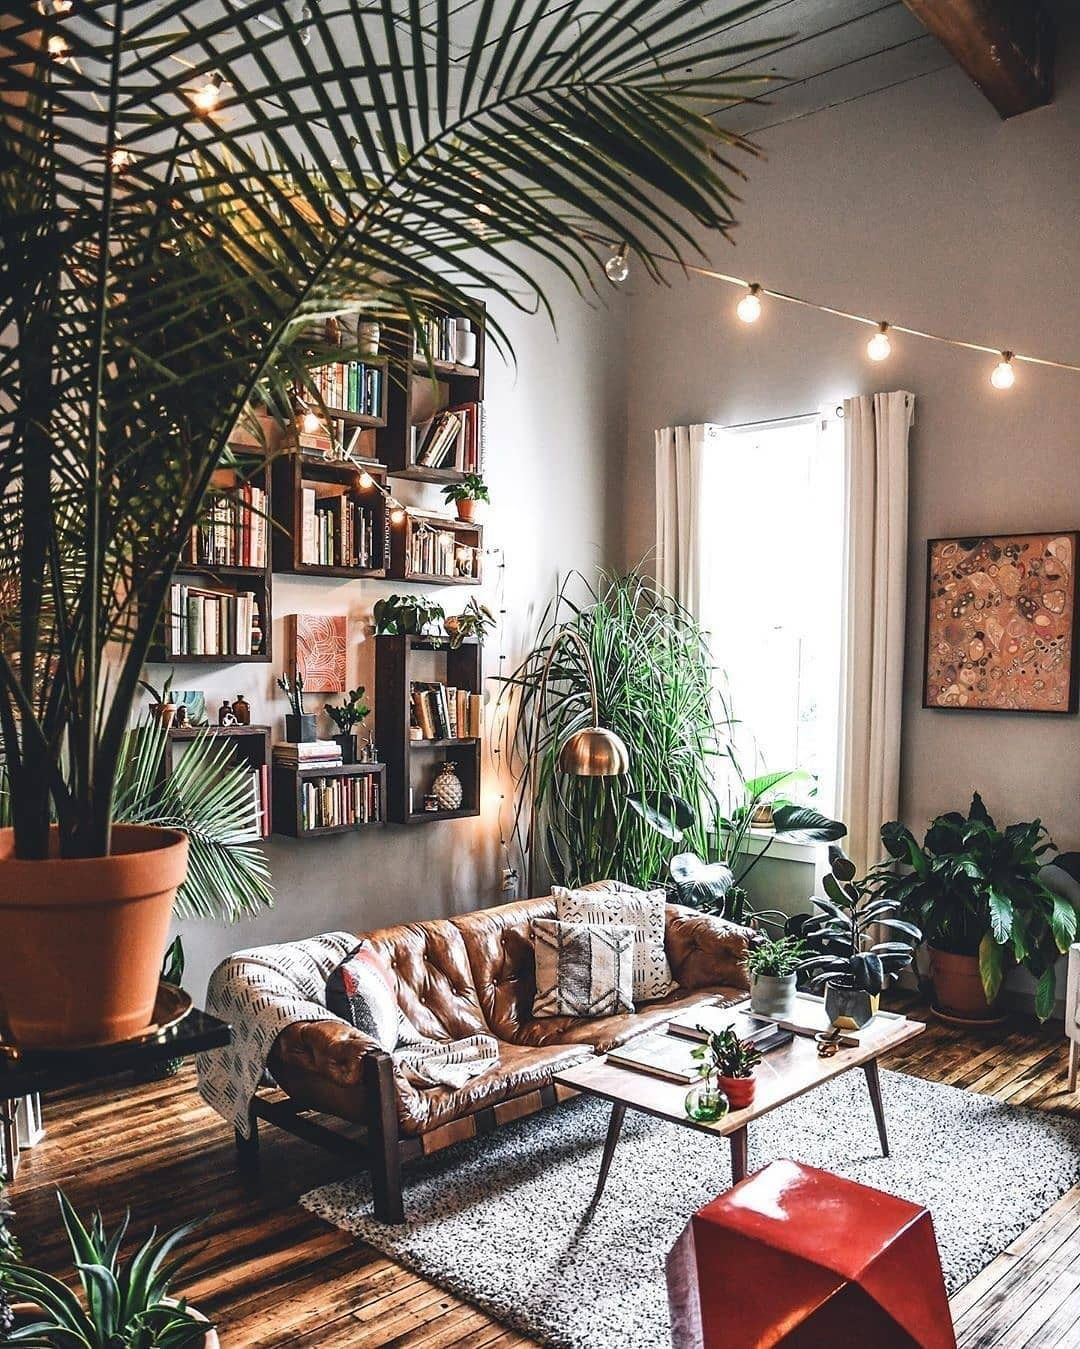 Interior Design Decor On Instagram I Can T Express How Much I Love This Living Room The In 2020 Bohemian Living Room Decor Eclectic Decor Boho Living Room